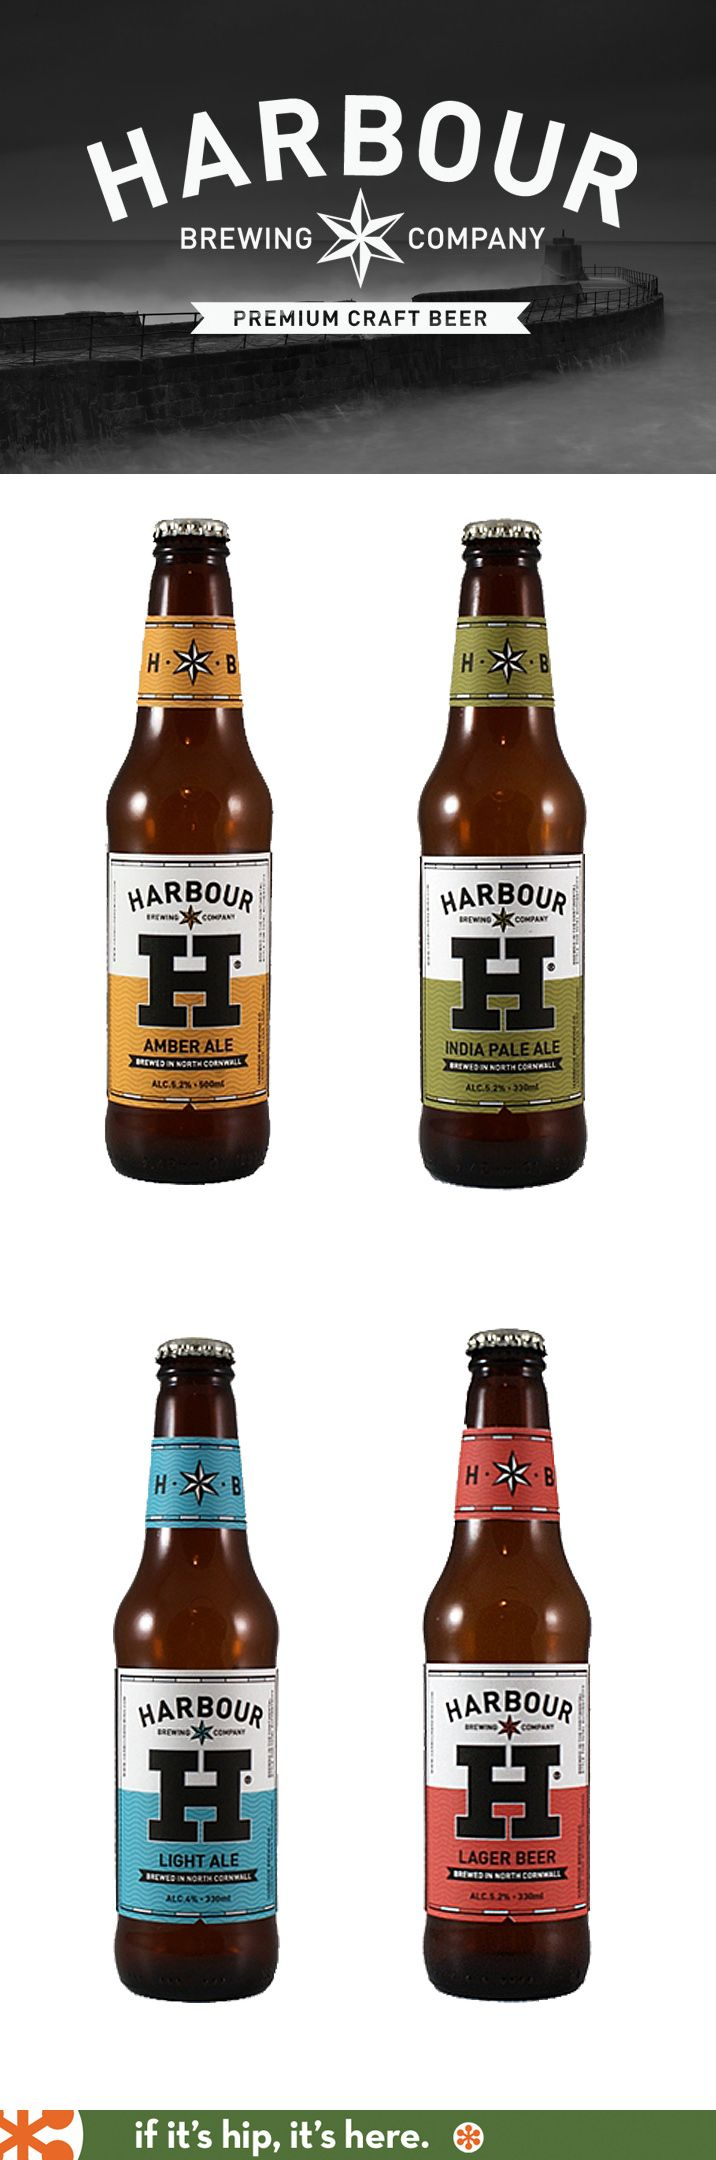 Harbour Brewing Company Beer Bottles - great design, and the beer's not too shabby either!